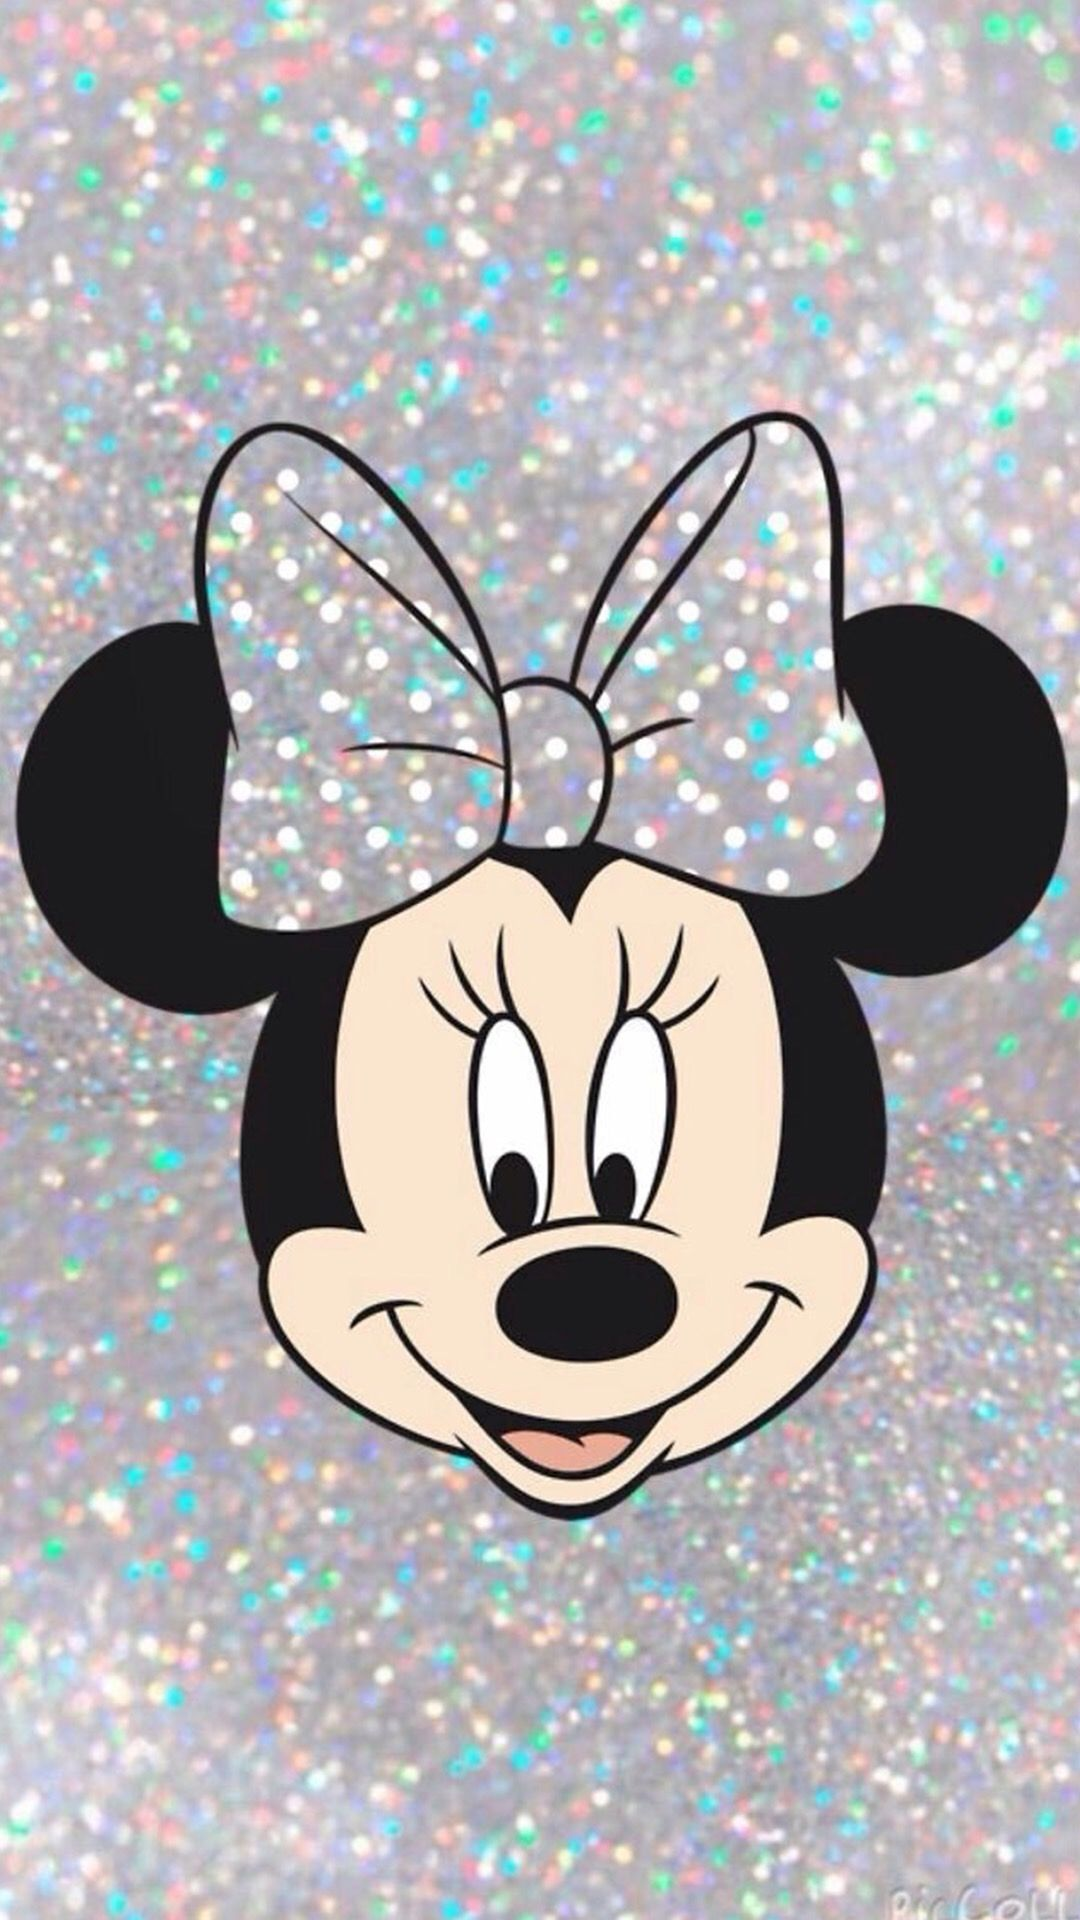 Wallpaper of Silver Sparkly Minnie Mouse disney